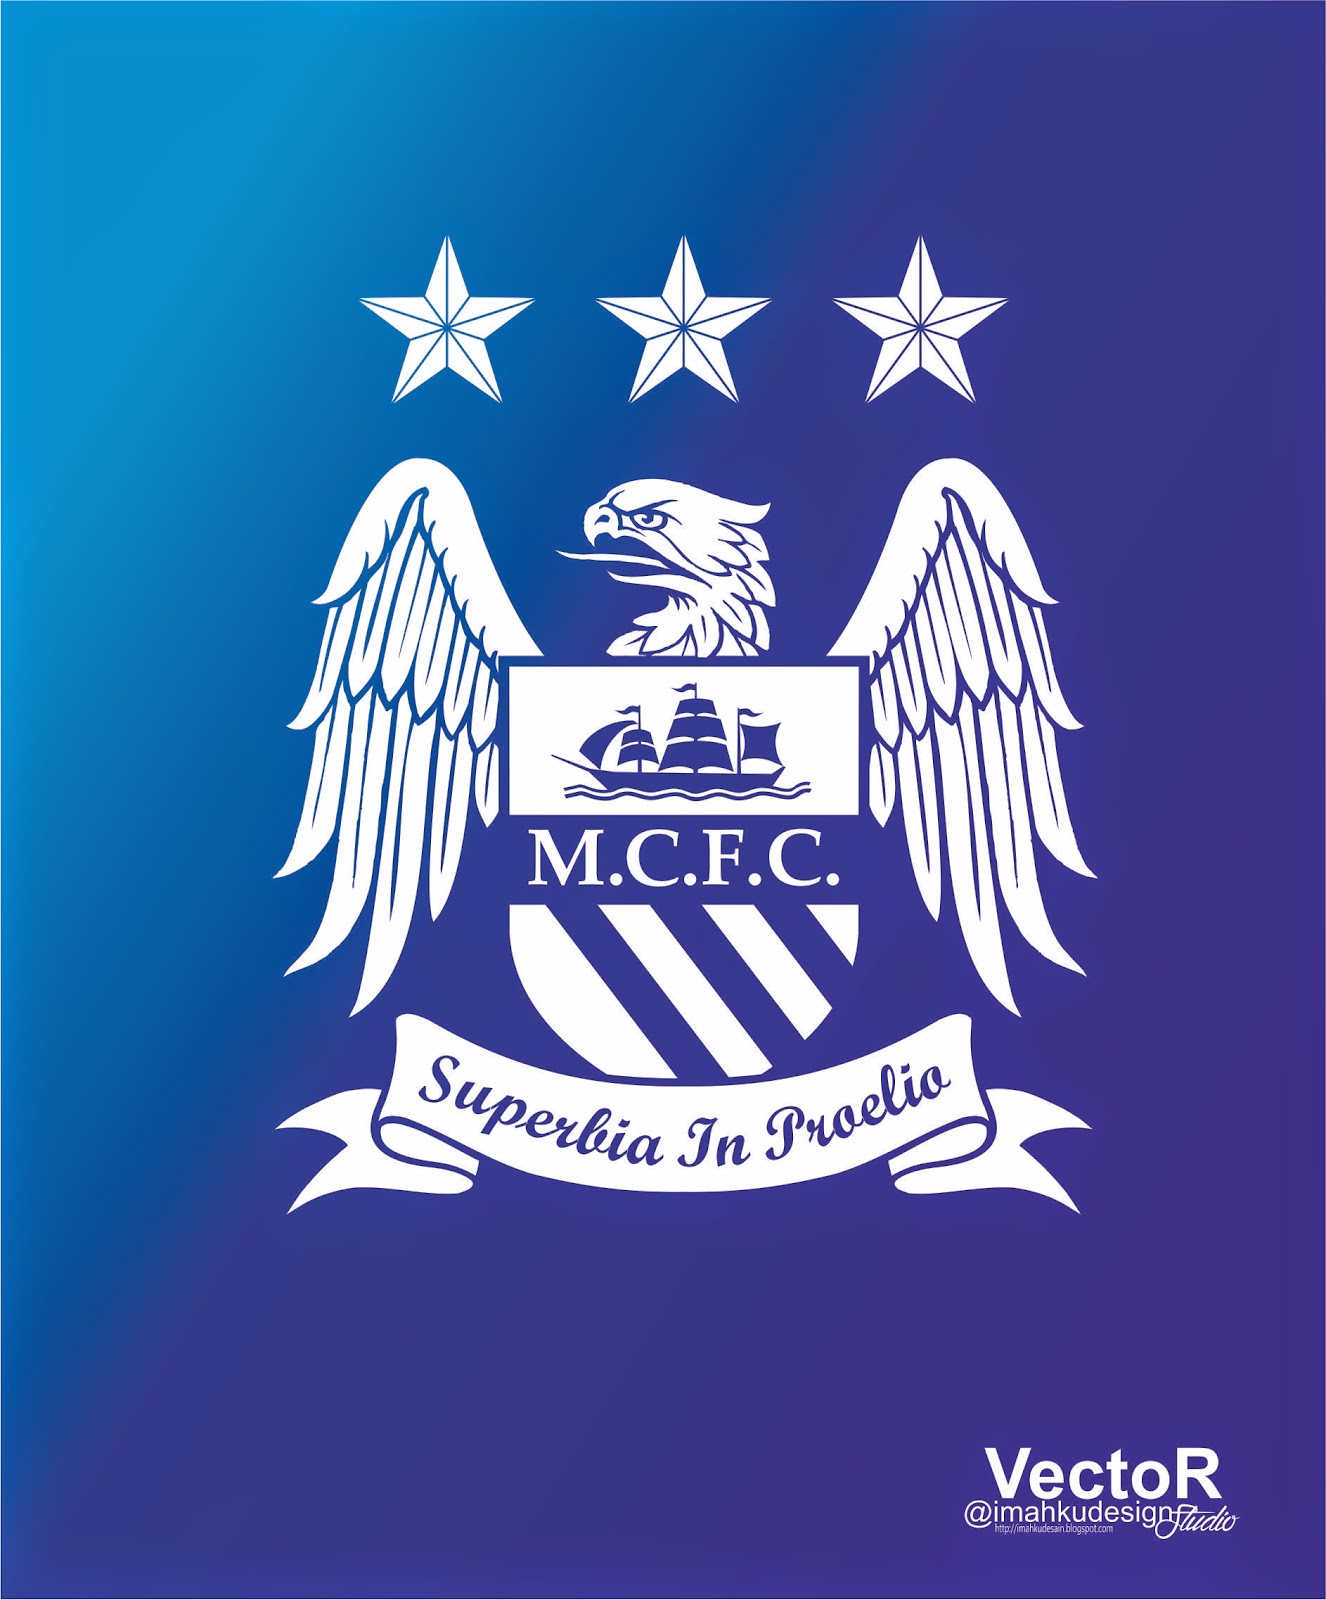 MANCHESTER CITY LOGO VECTOR (AI, EPS, CDR) FREE DOWNLOAD